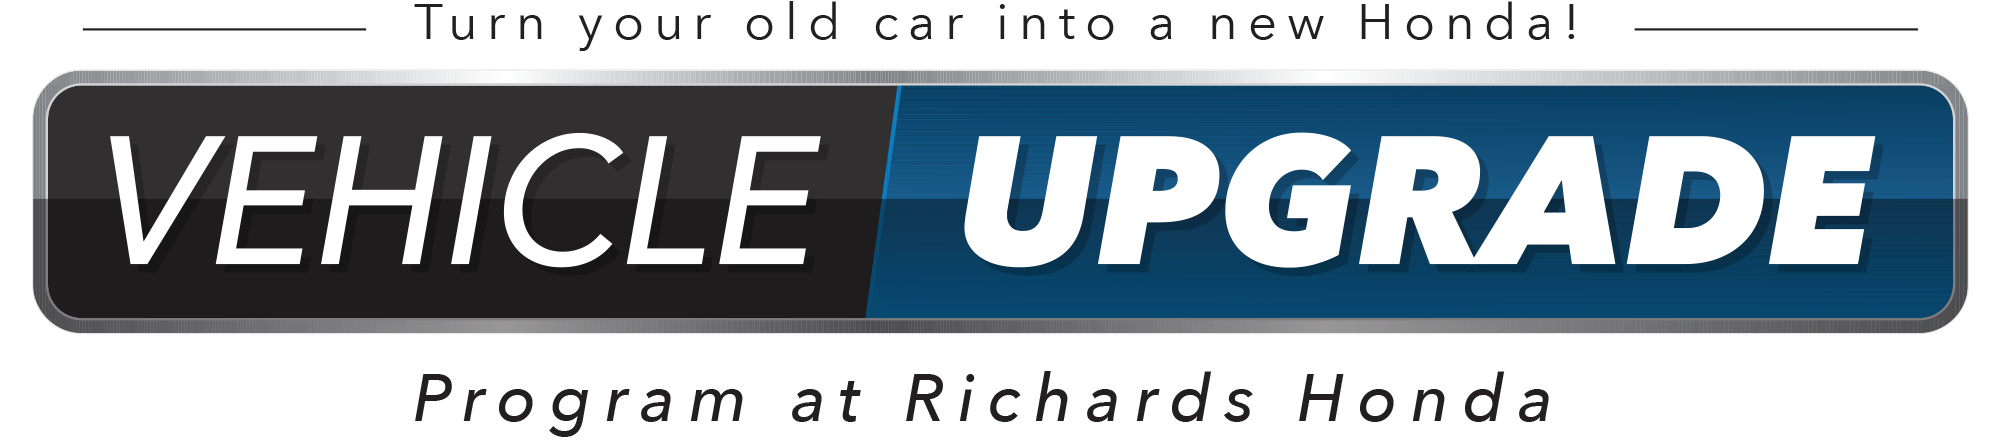 Richards Honda Vehicle Upgrade Program